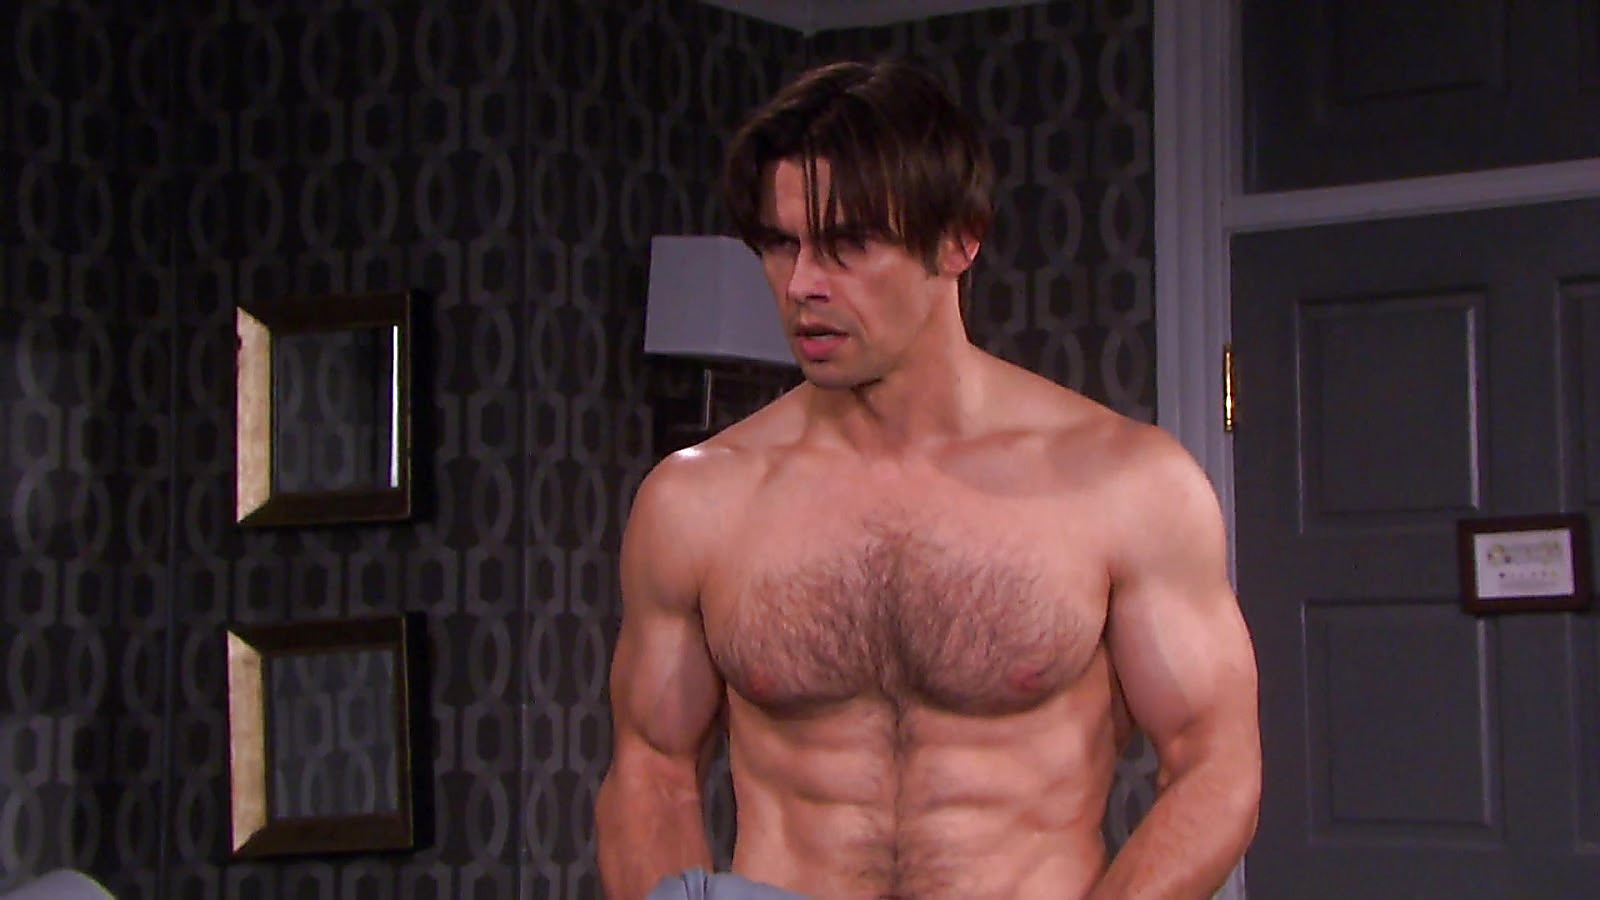 Paul Telfer Days Of Our Lives 2020 05 01 1588351980 1